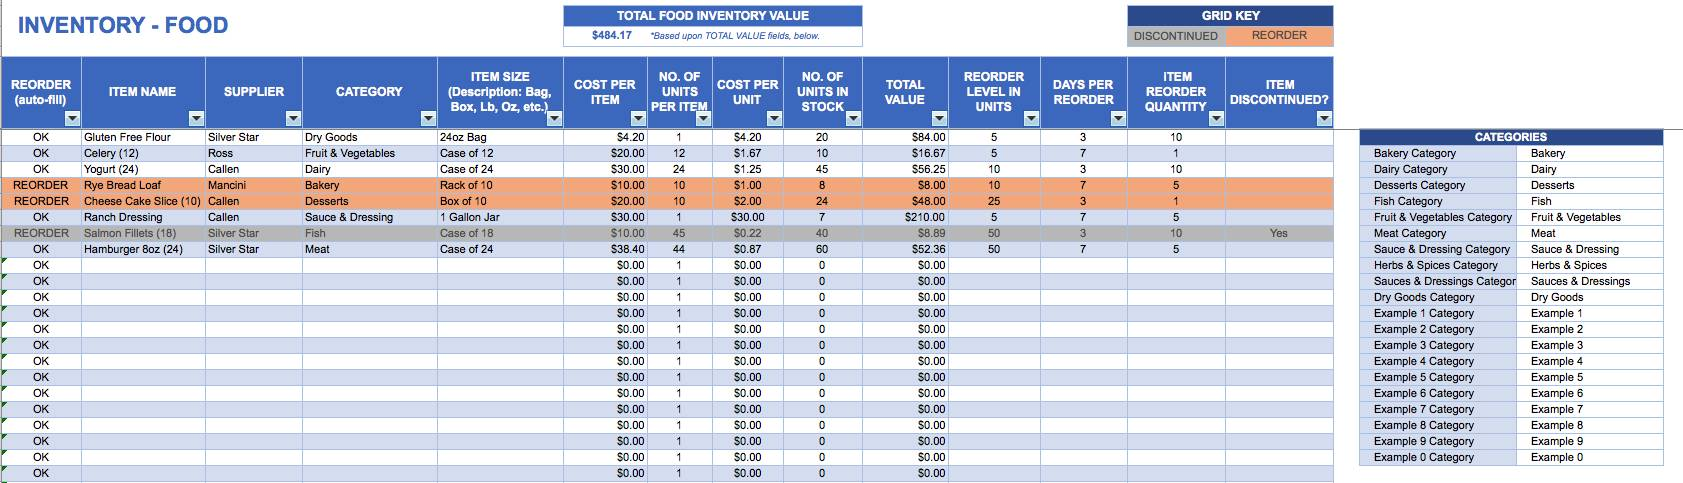 Restaurant Inventory Template Excel